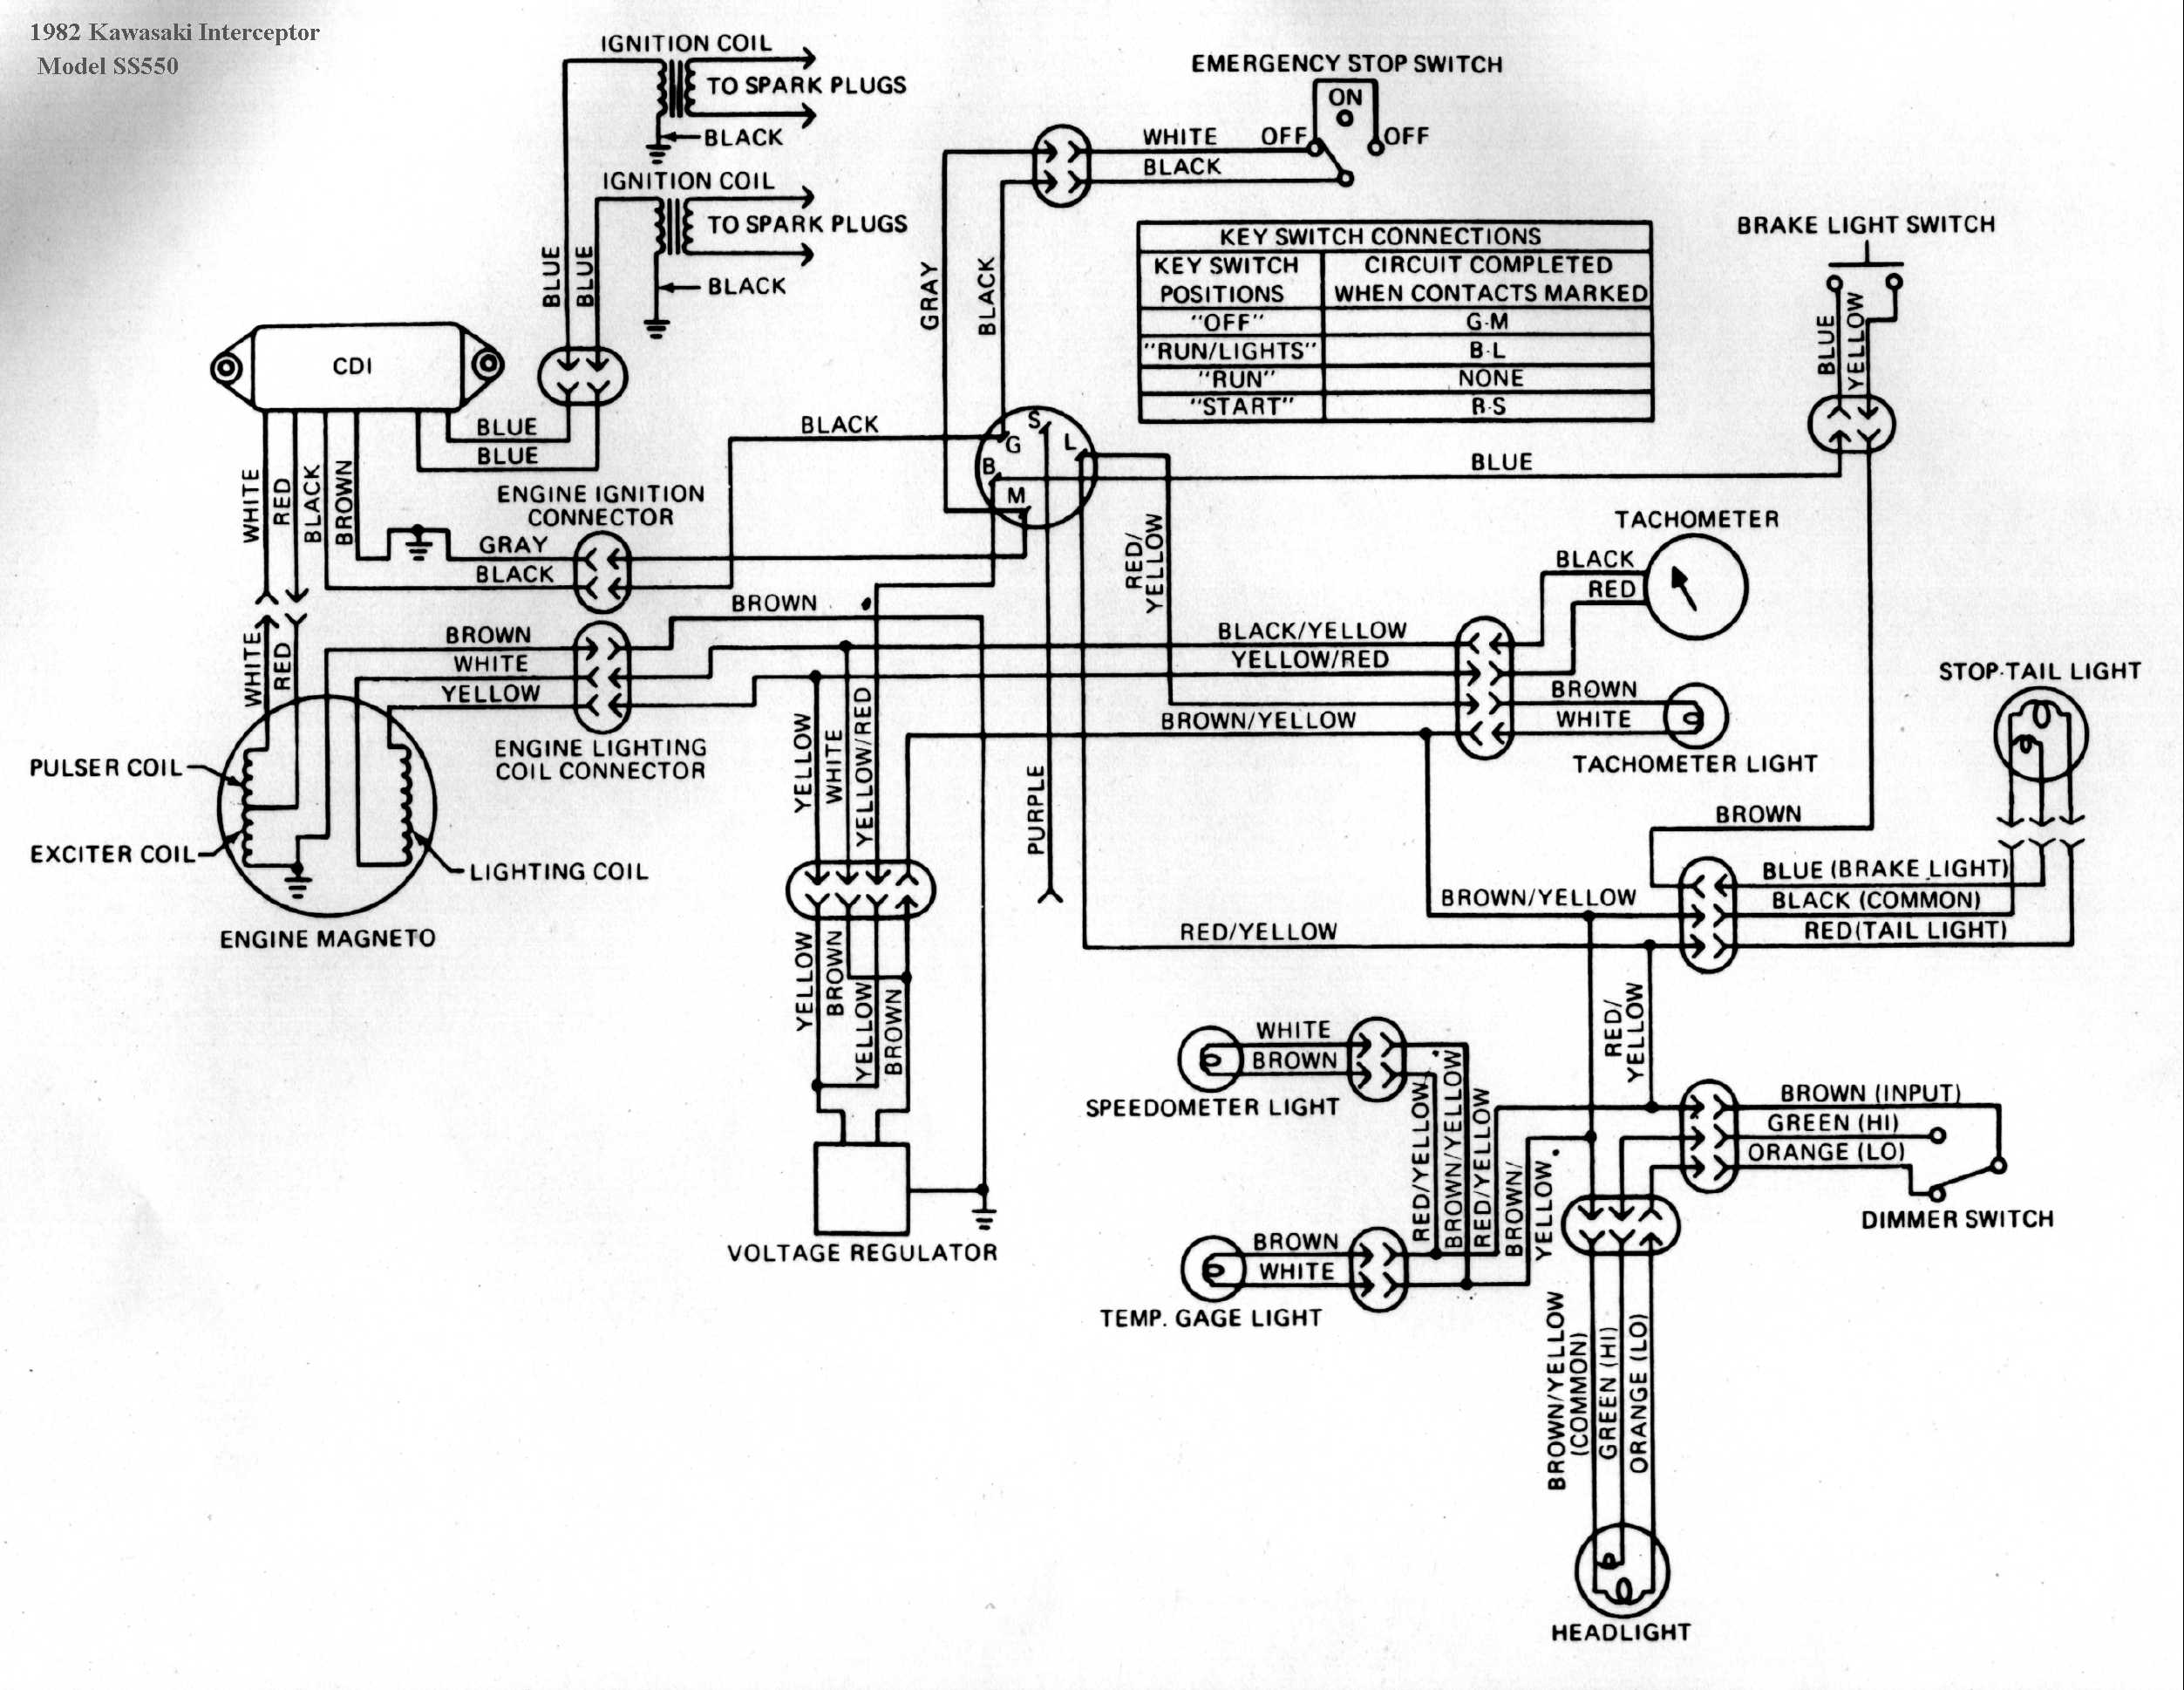 ss550 2009 kawasaki mule 4010 wiring diagram 2009 kawasaki mule 4010 2510 mule wiring diagram at bayanpartner.co